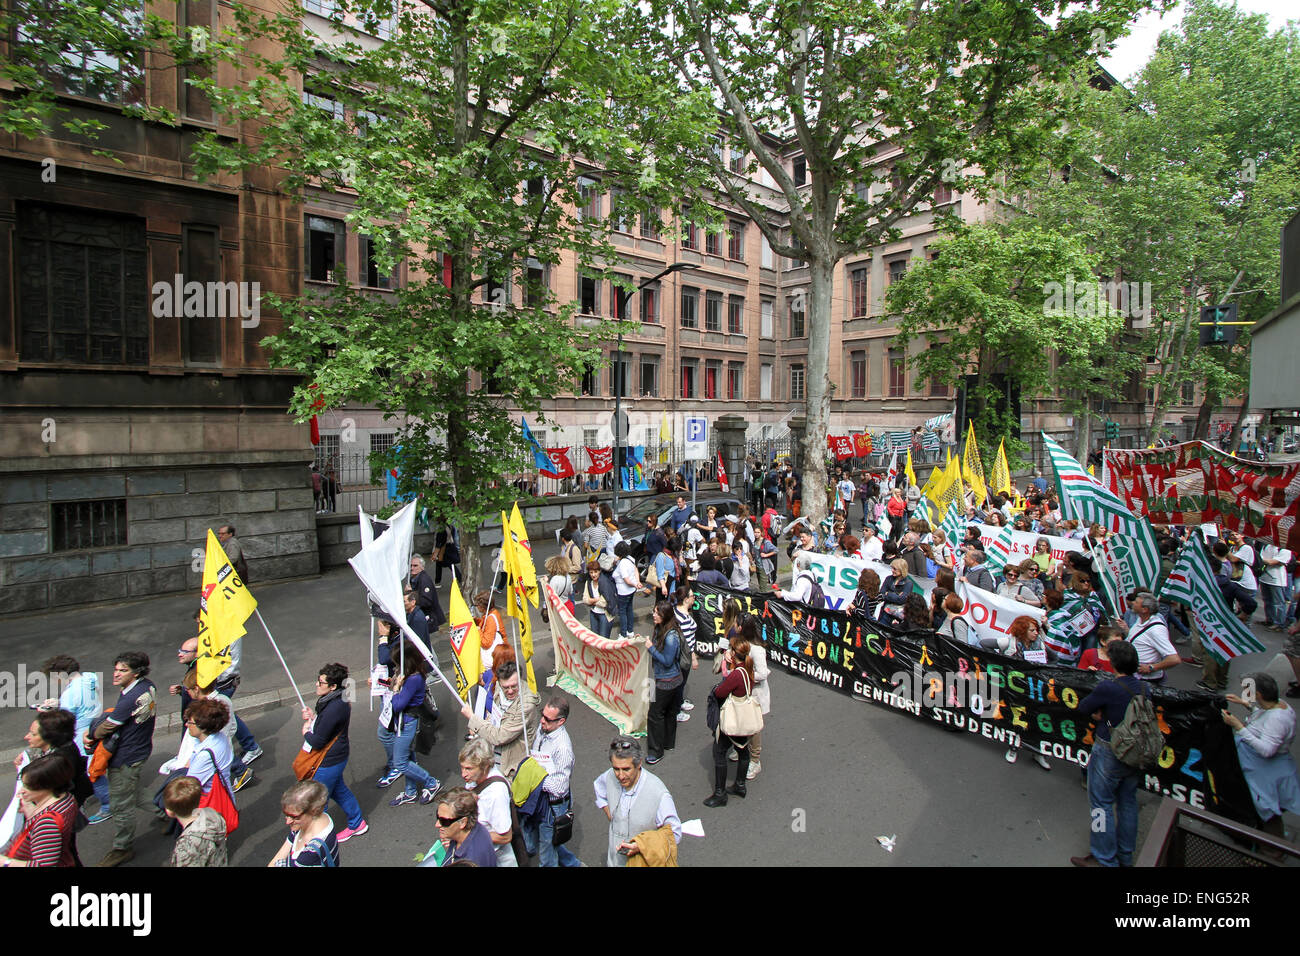 Milan, Italy. 5th May, 2015. Thousands of people, participate in a street rally against national school reforms - Stock Image